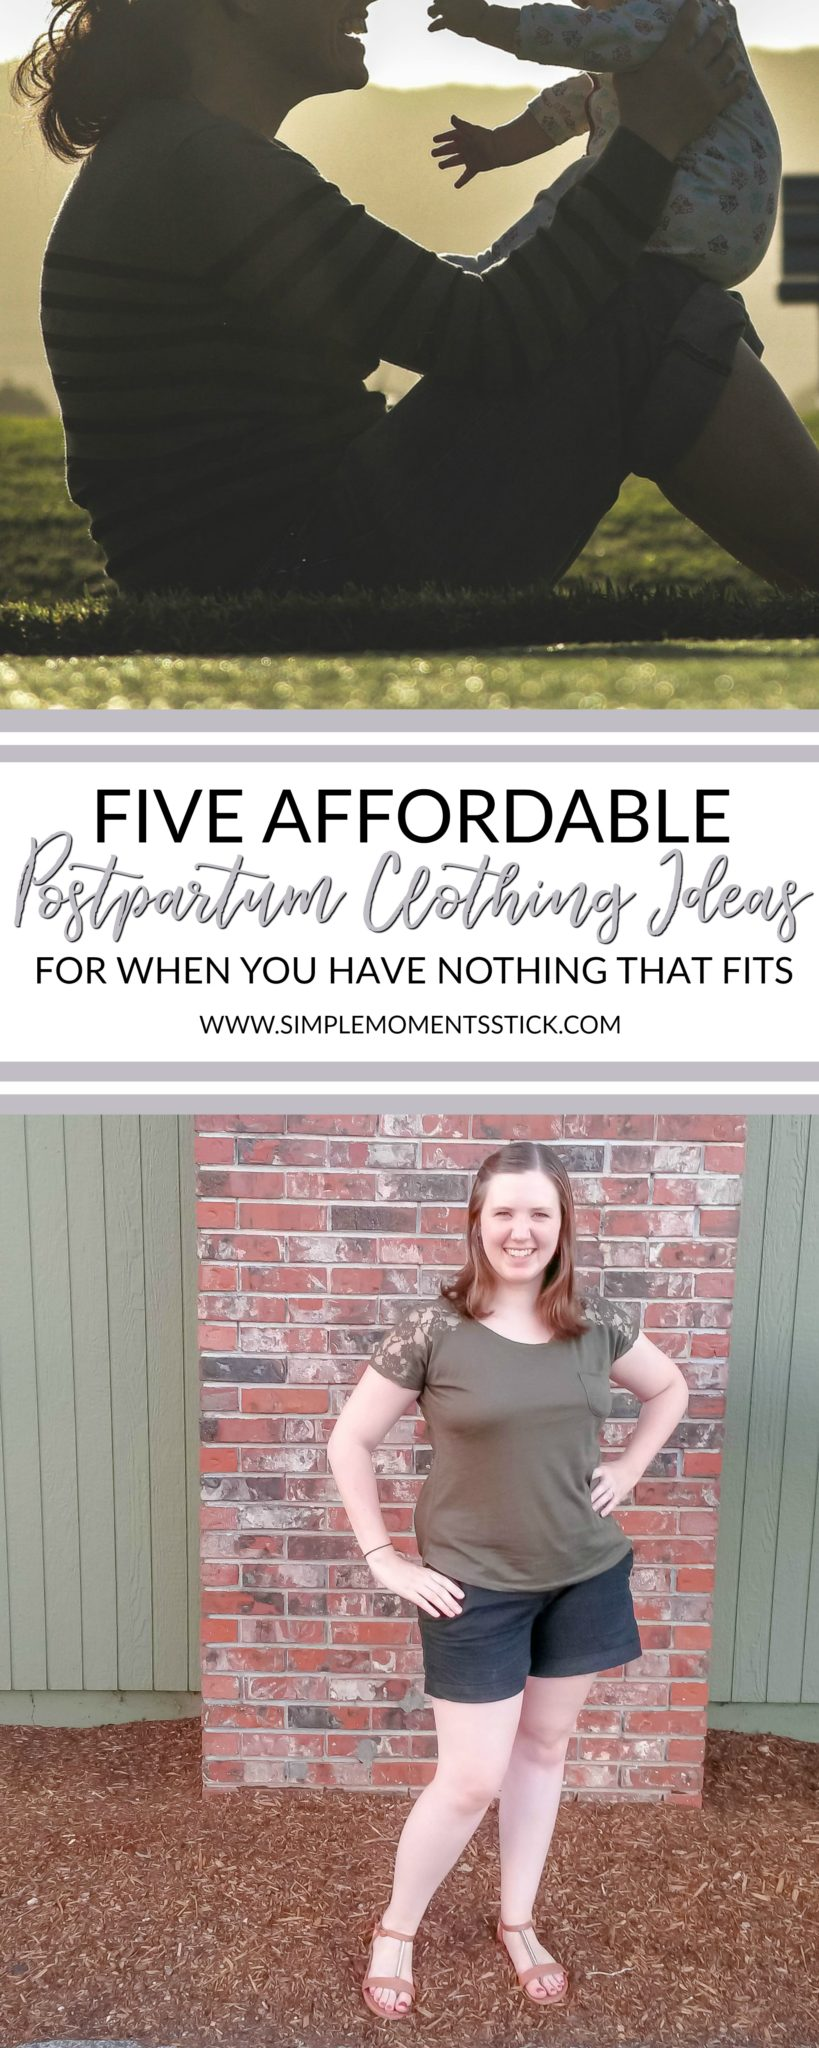 Nothing to wear???  You're going to want these postpartum clothing ideas and tips!